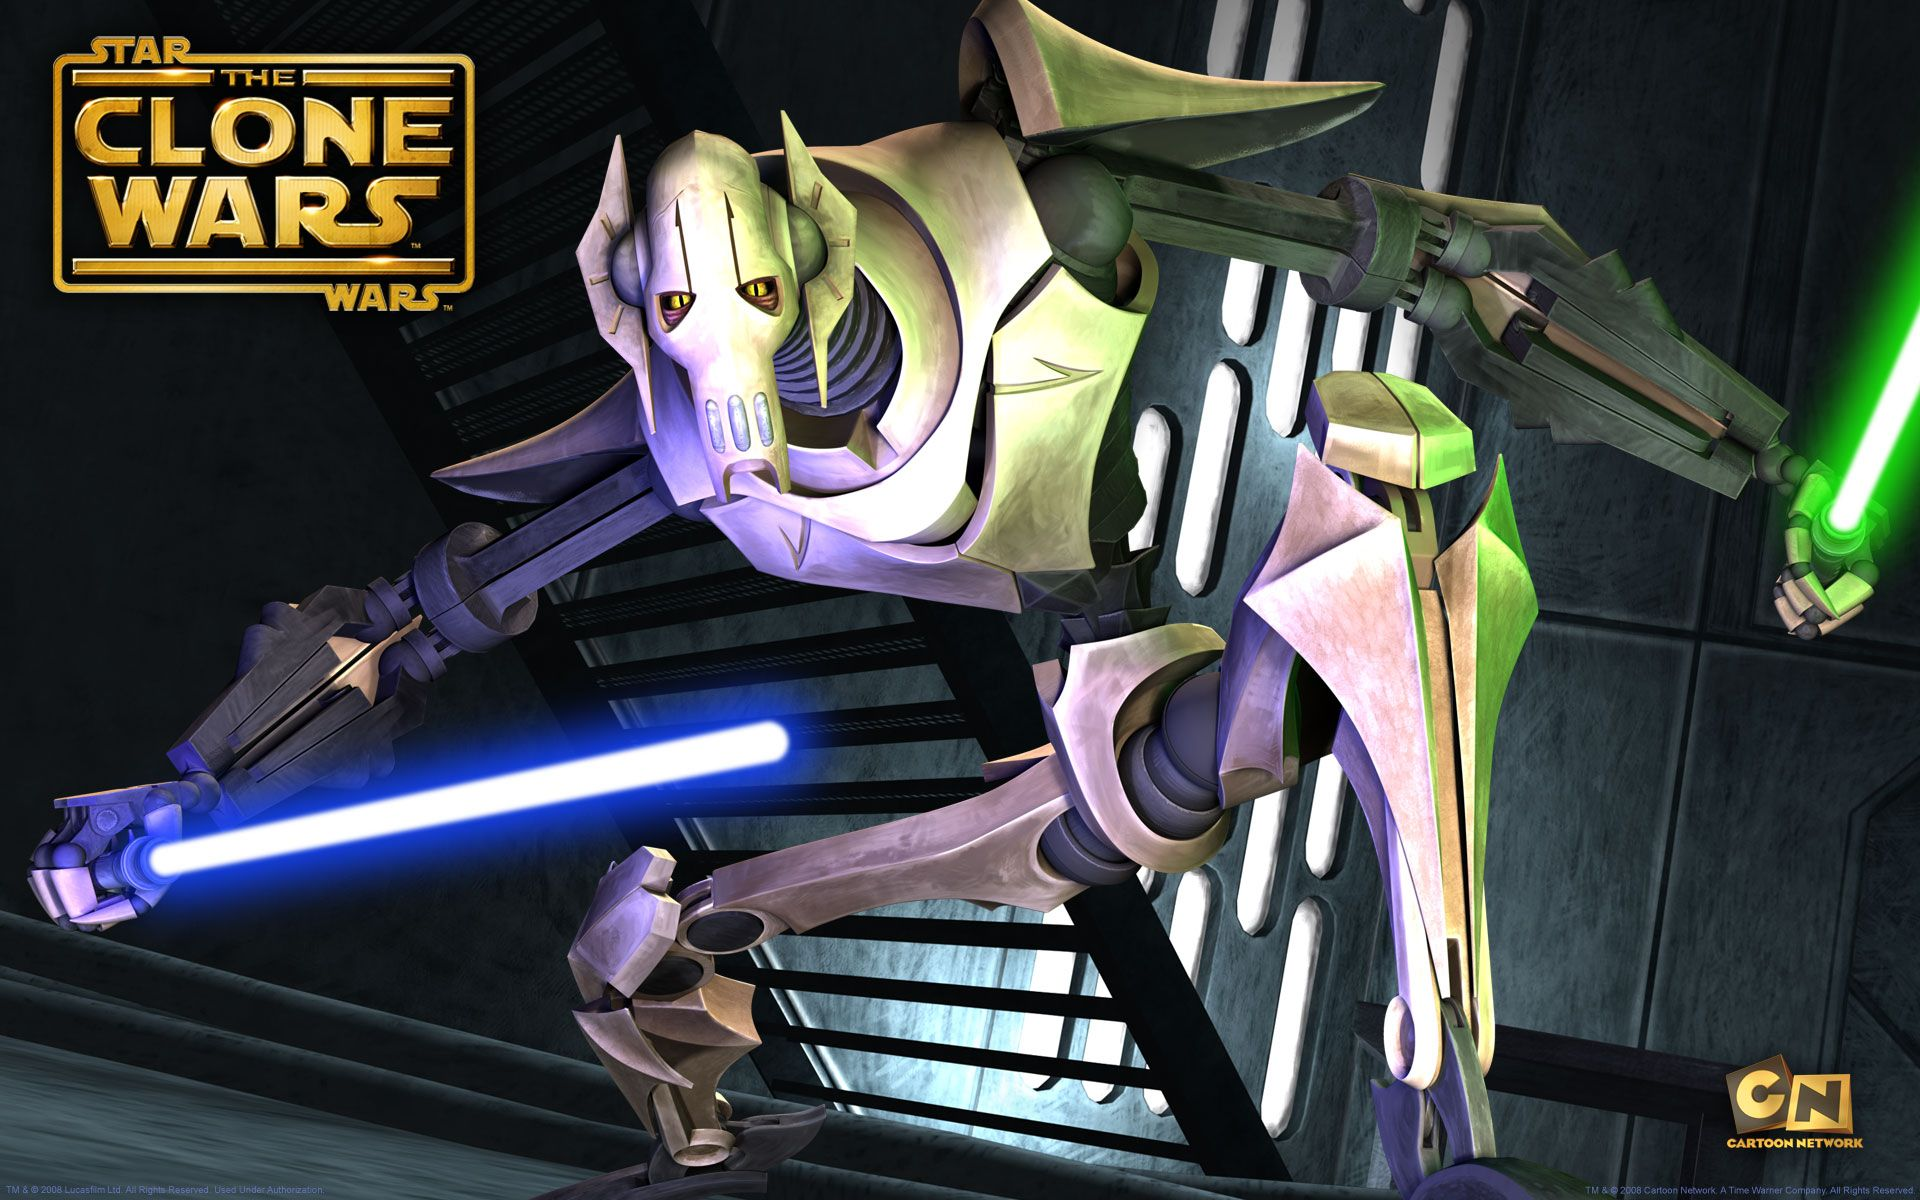 Star Wars The Clone Wars Wallpaper Star Wars Clone Wars Star Wars Wallpaper Clone Wars